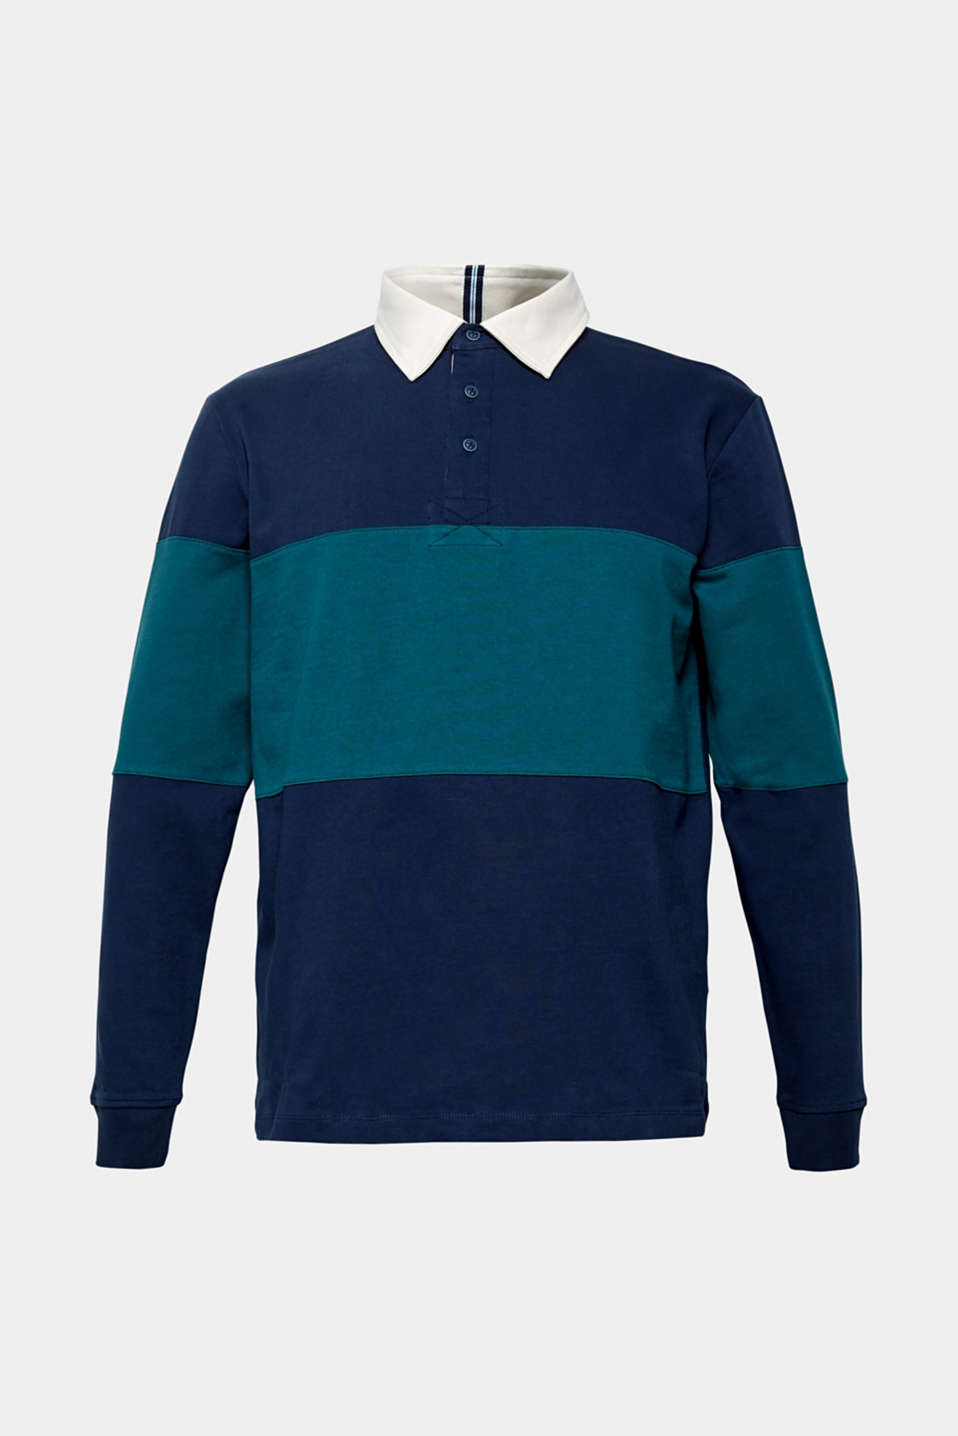 Long sleeve jersey top in 100% cotton, NAVY, detail image number 7